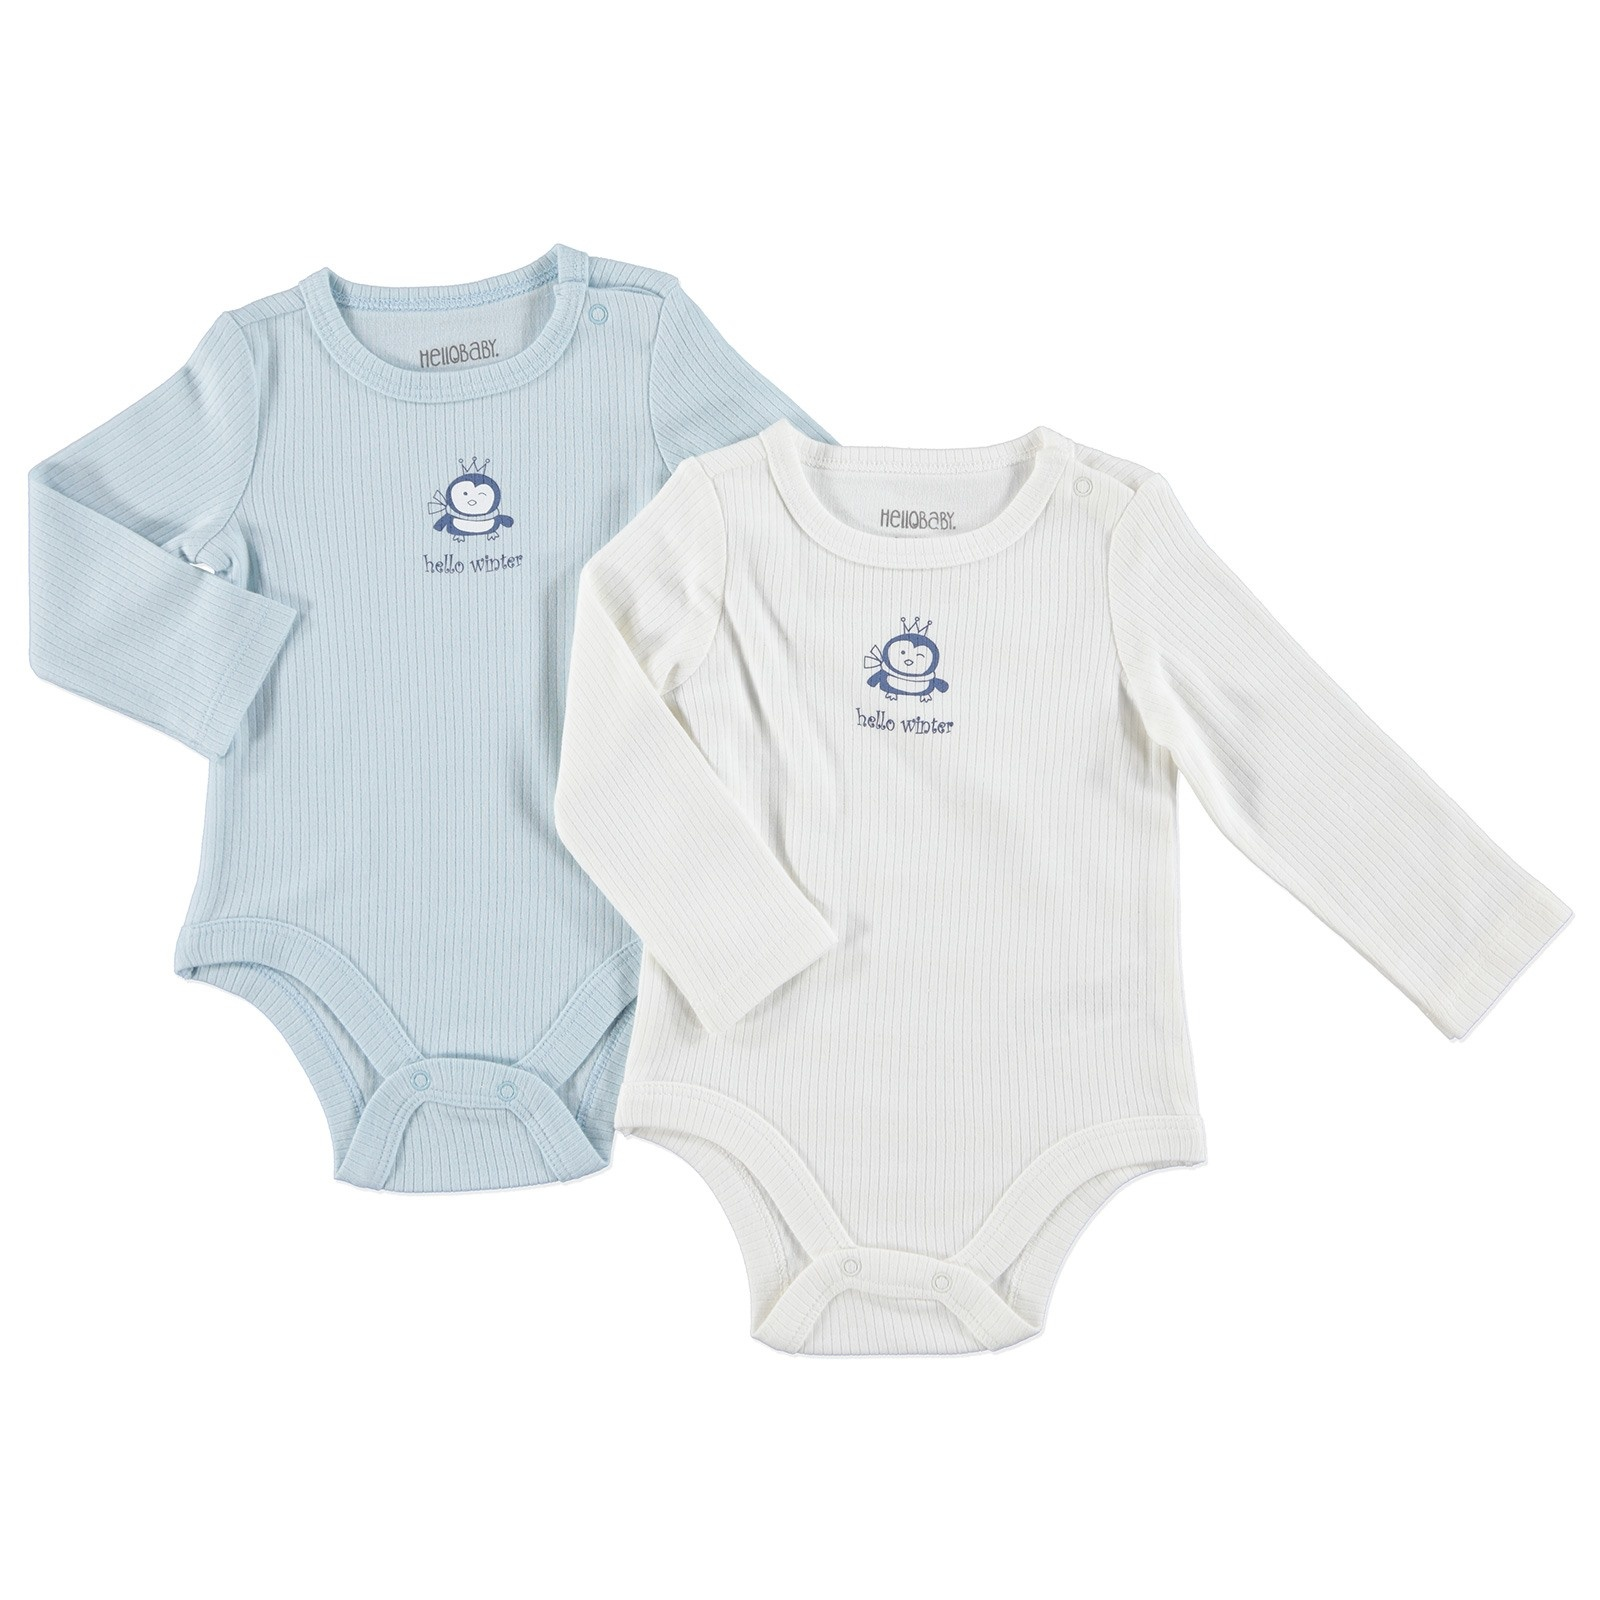 Ebebek HelloBaby Extra Soft Warm 2 Pack Thermal Bodysuit